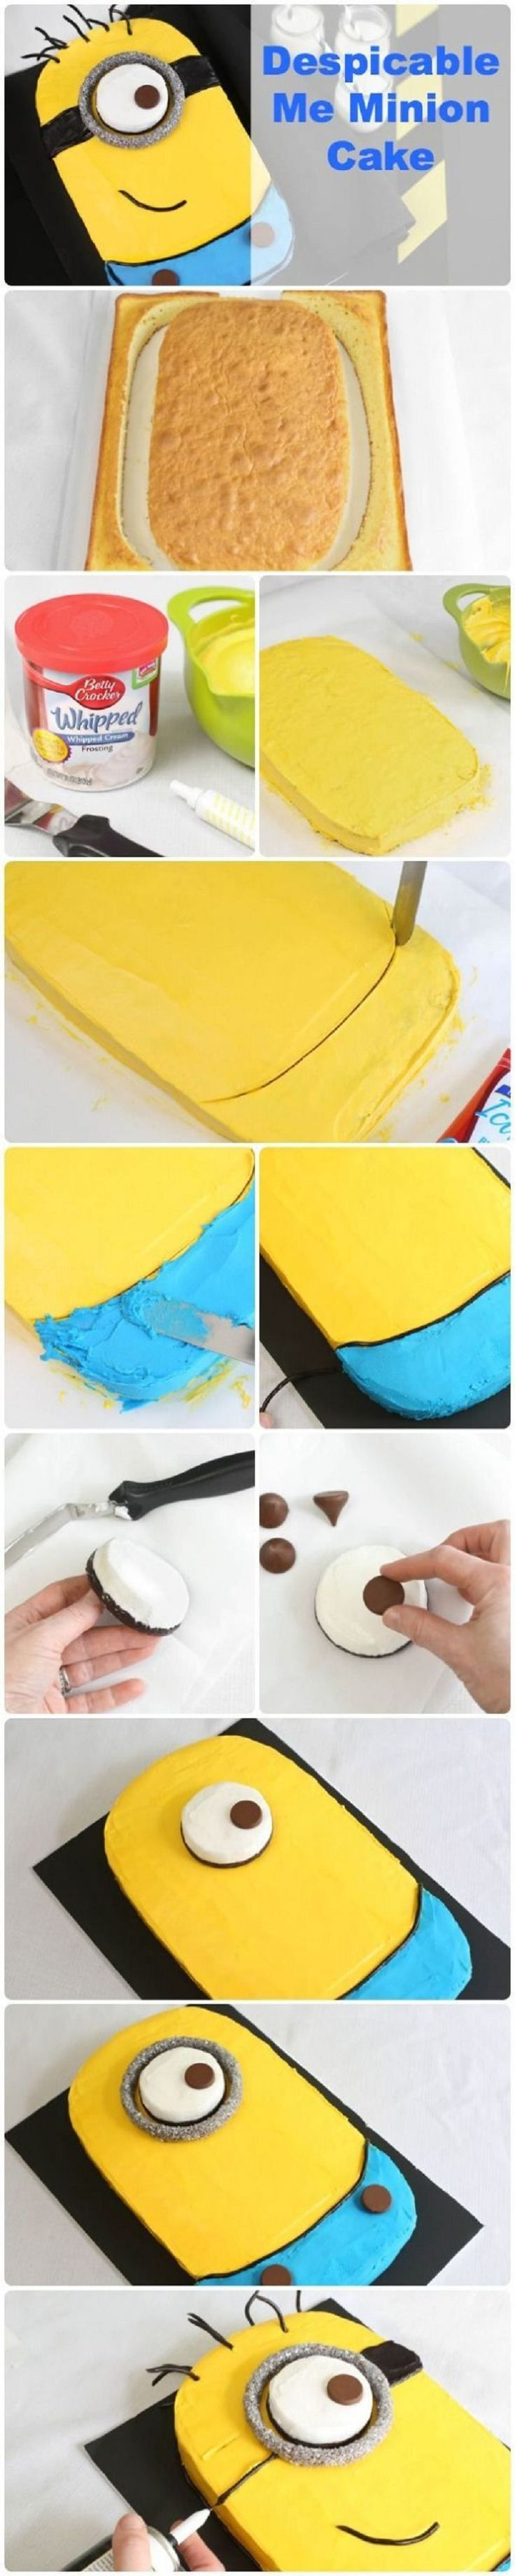 Despicable me minion cake recipe by cupcakepedia